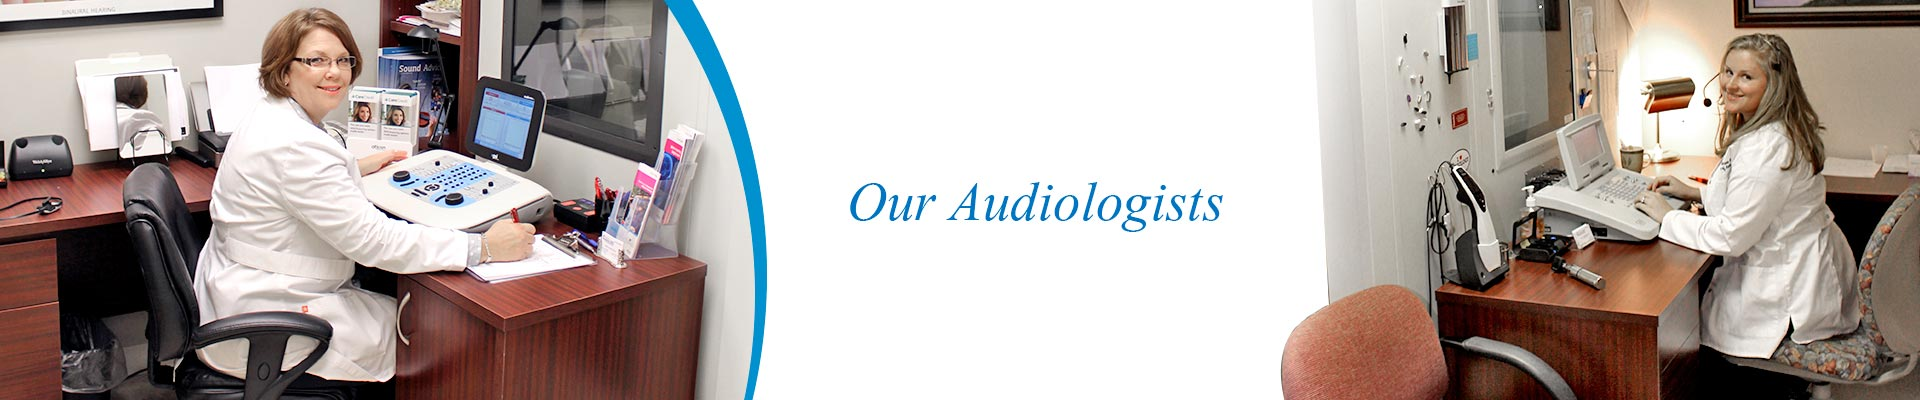 Our Audiologists - Associated Coastal ENT